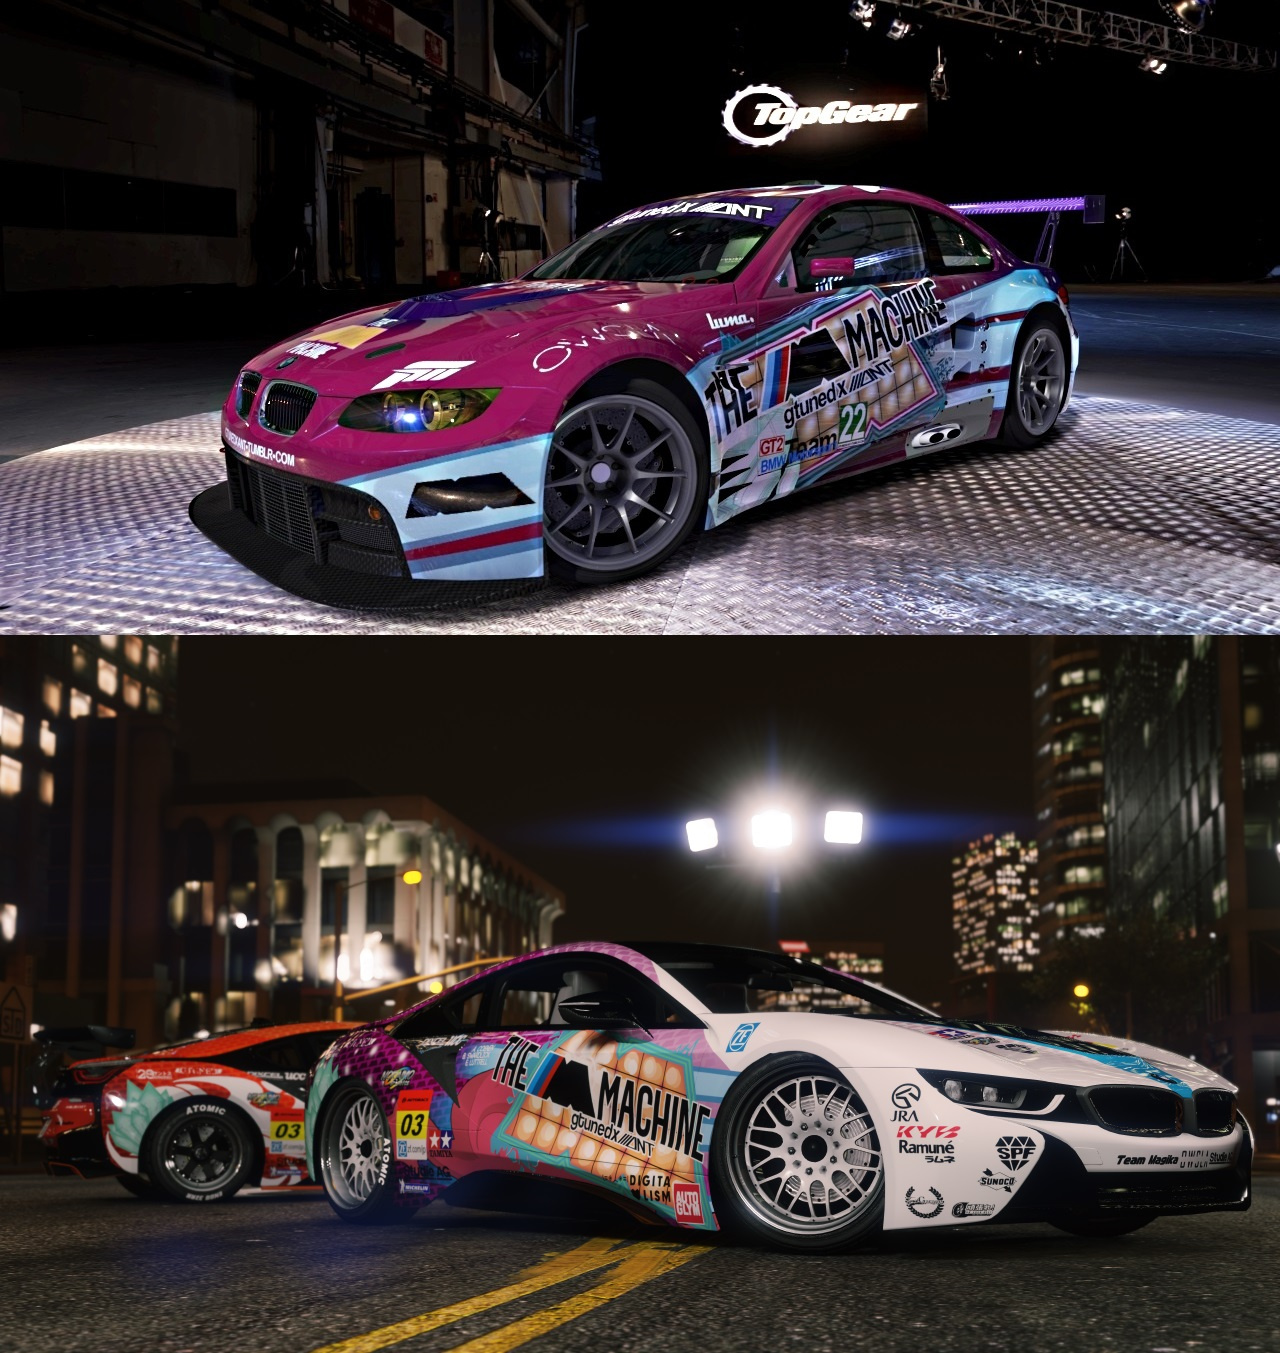 The M Machine Livery For The BMW I8